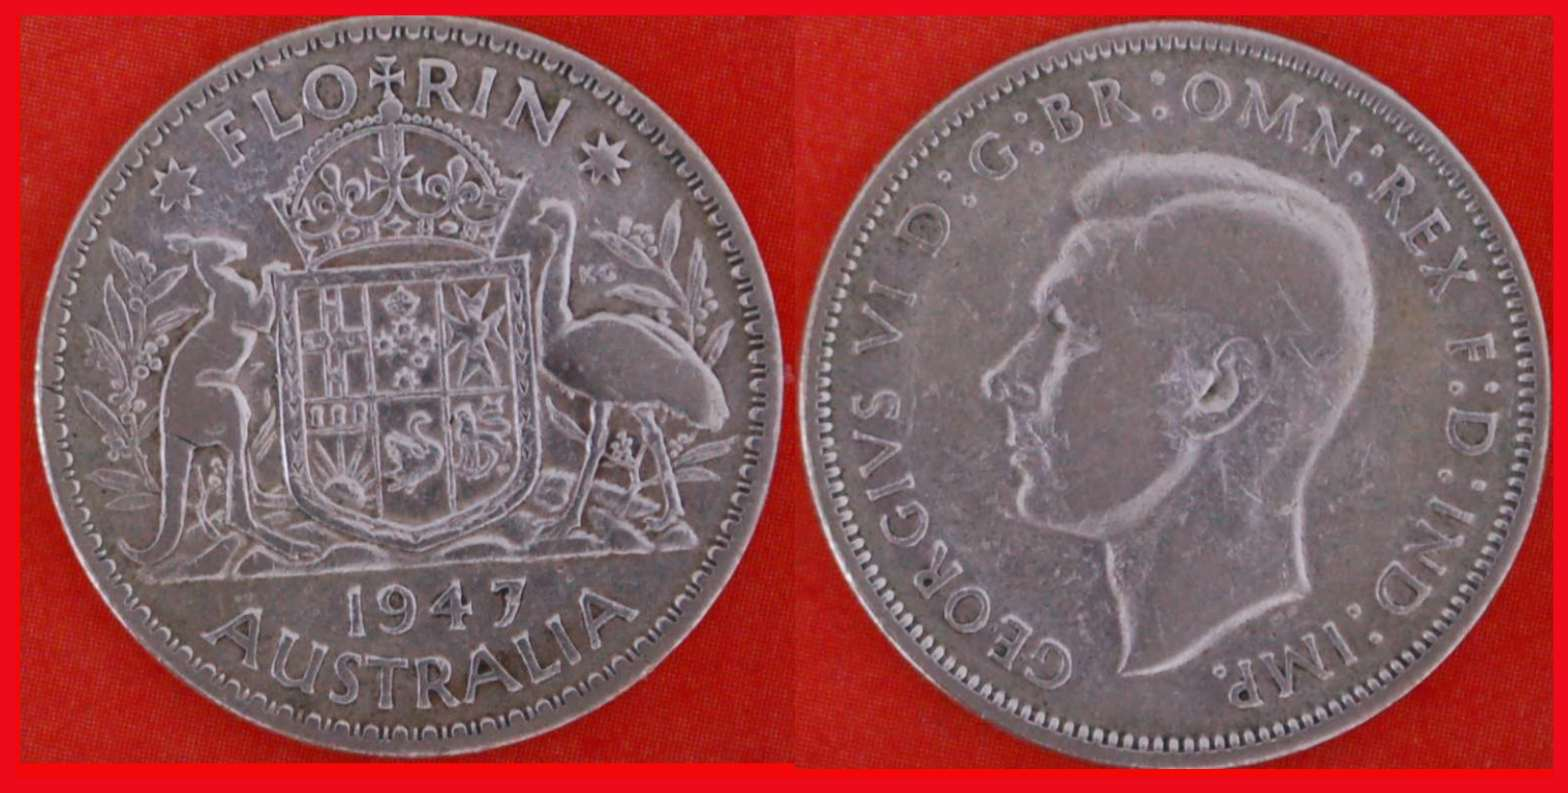 + SILVER * AUSTRALIA FLORIN 1947! George VI (1937-1952) LOW START ★ NO RESERVE!